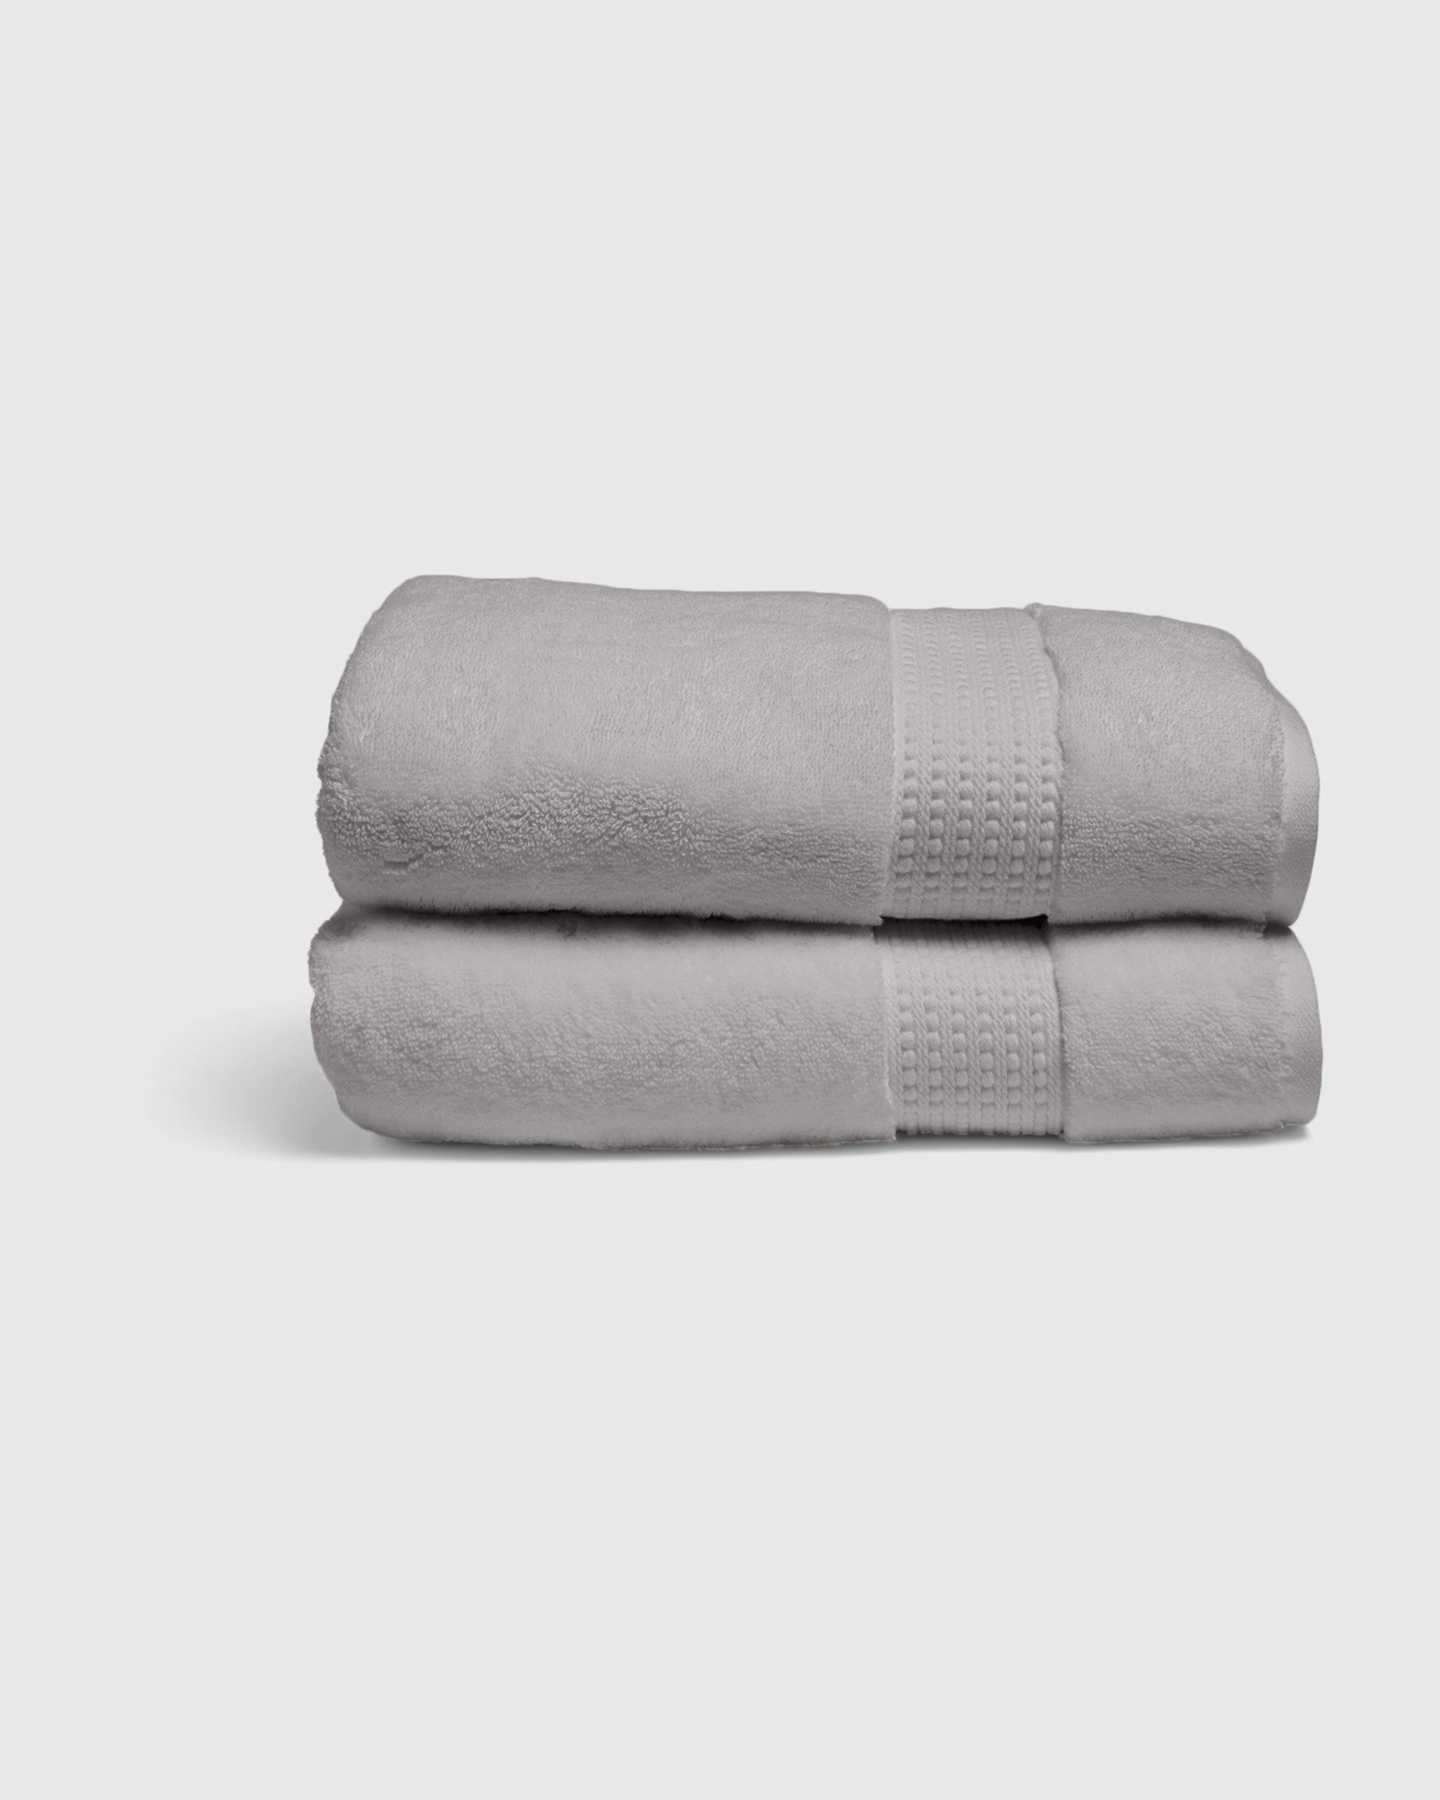 Turkish Quick-Dry Bath Sheets (Set of 2) - Grey - 1